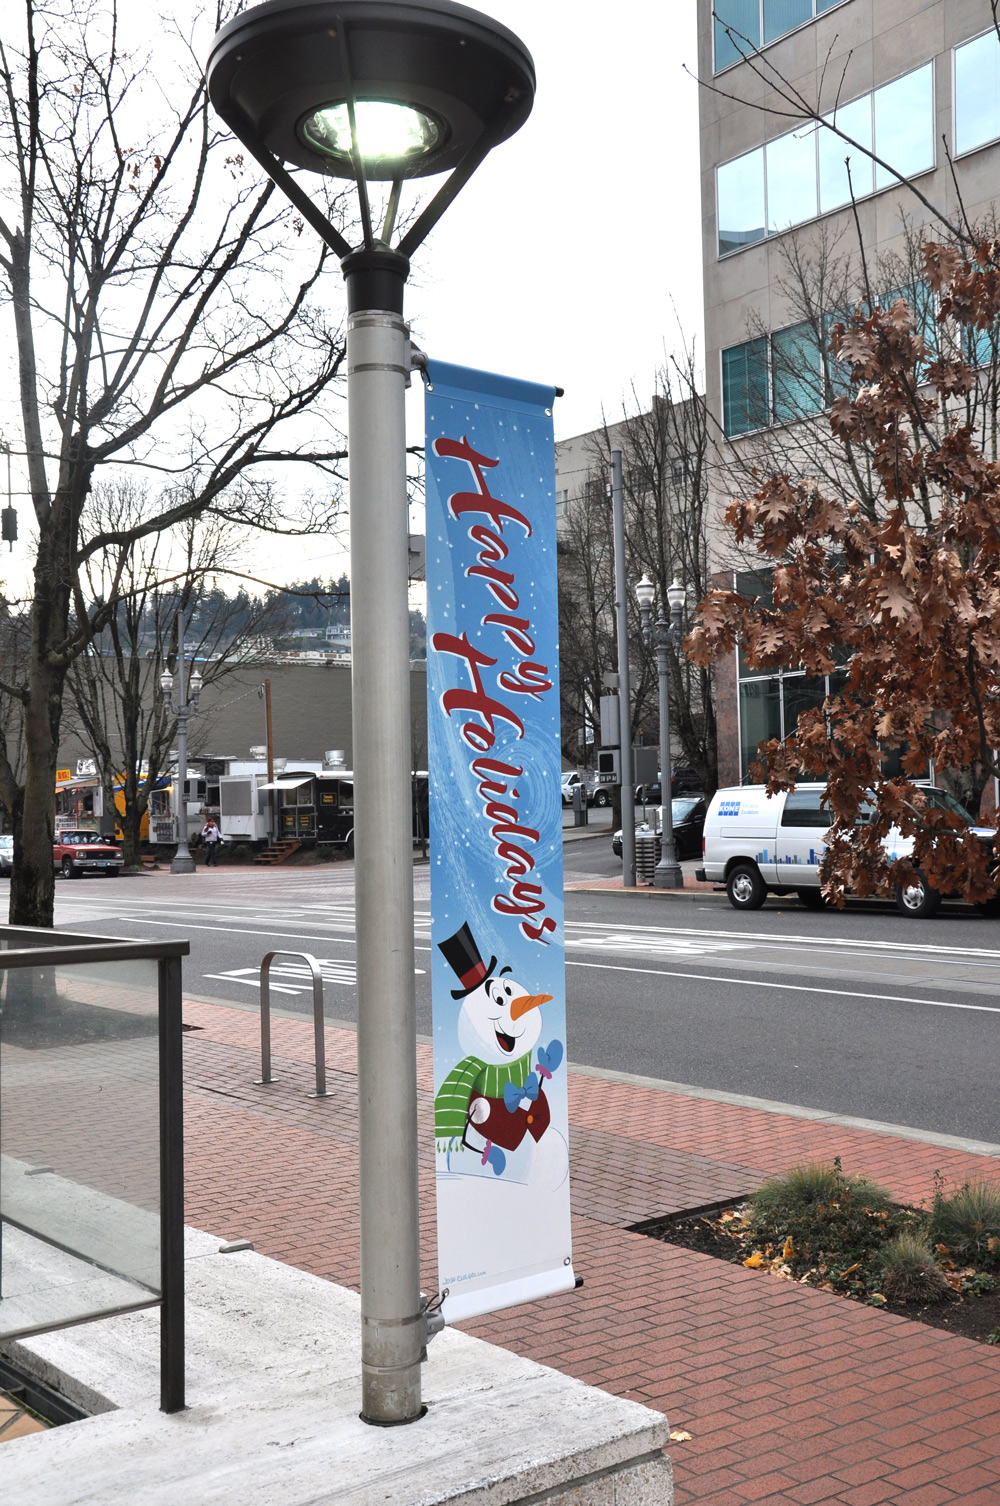 Unitus Holiday Greetings snowman vertica sign